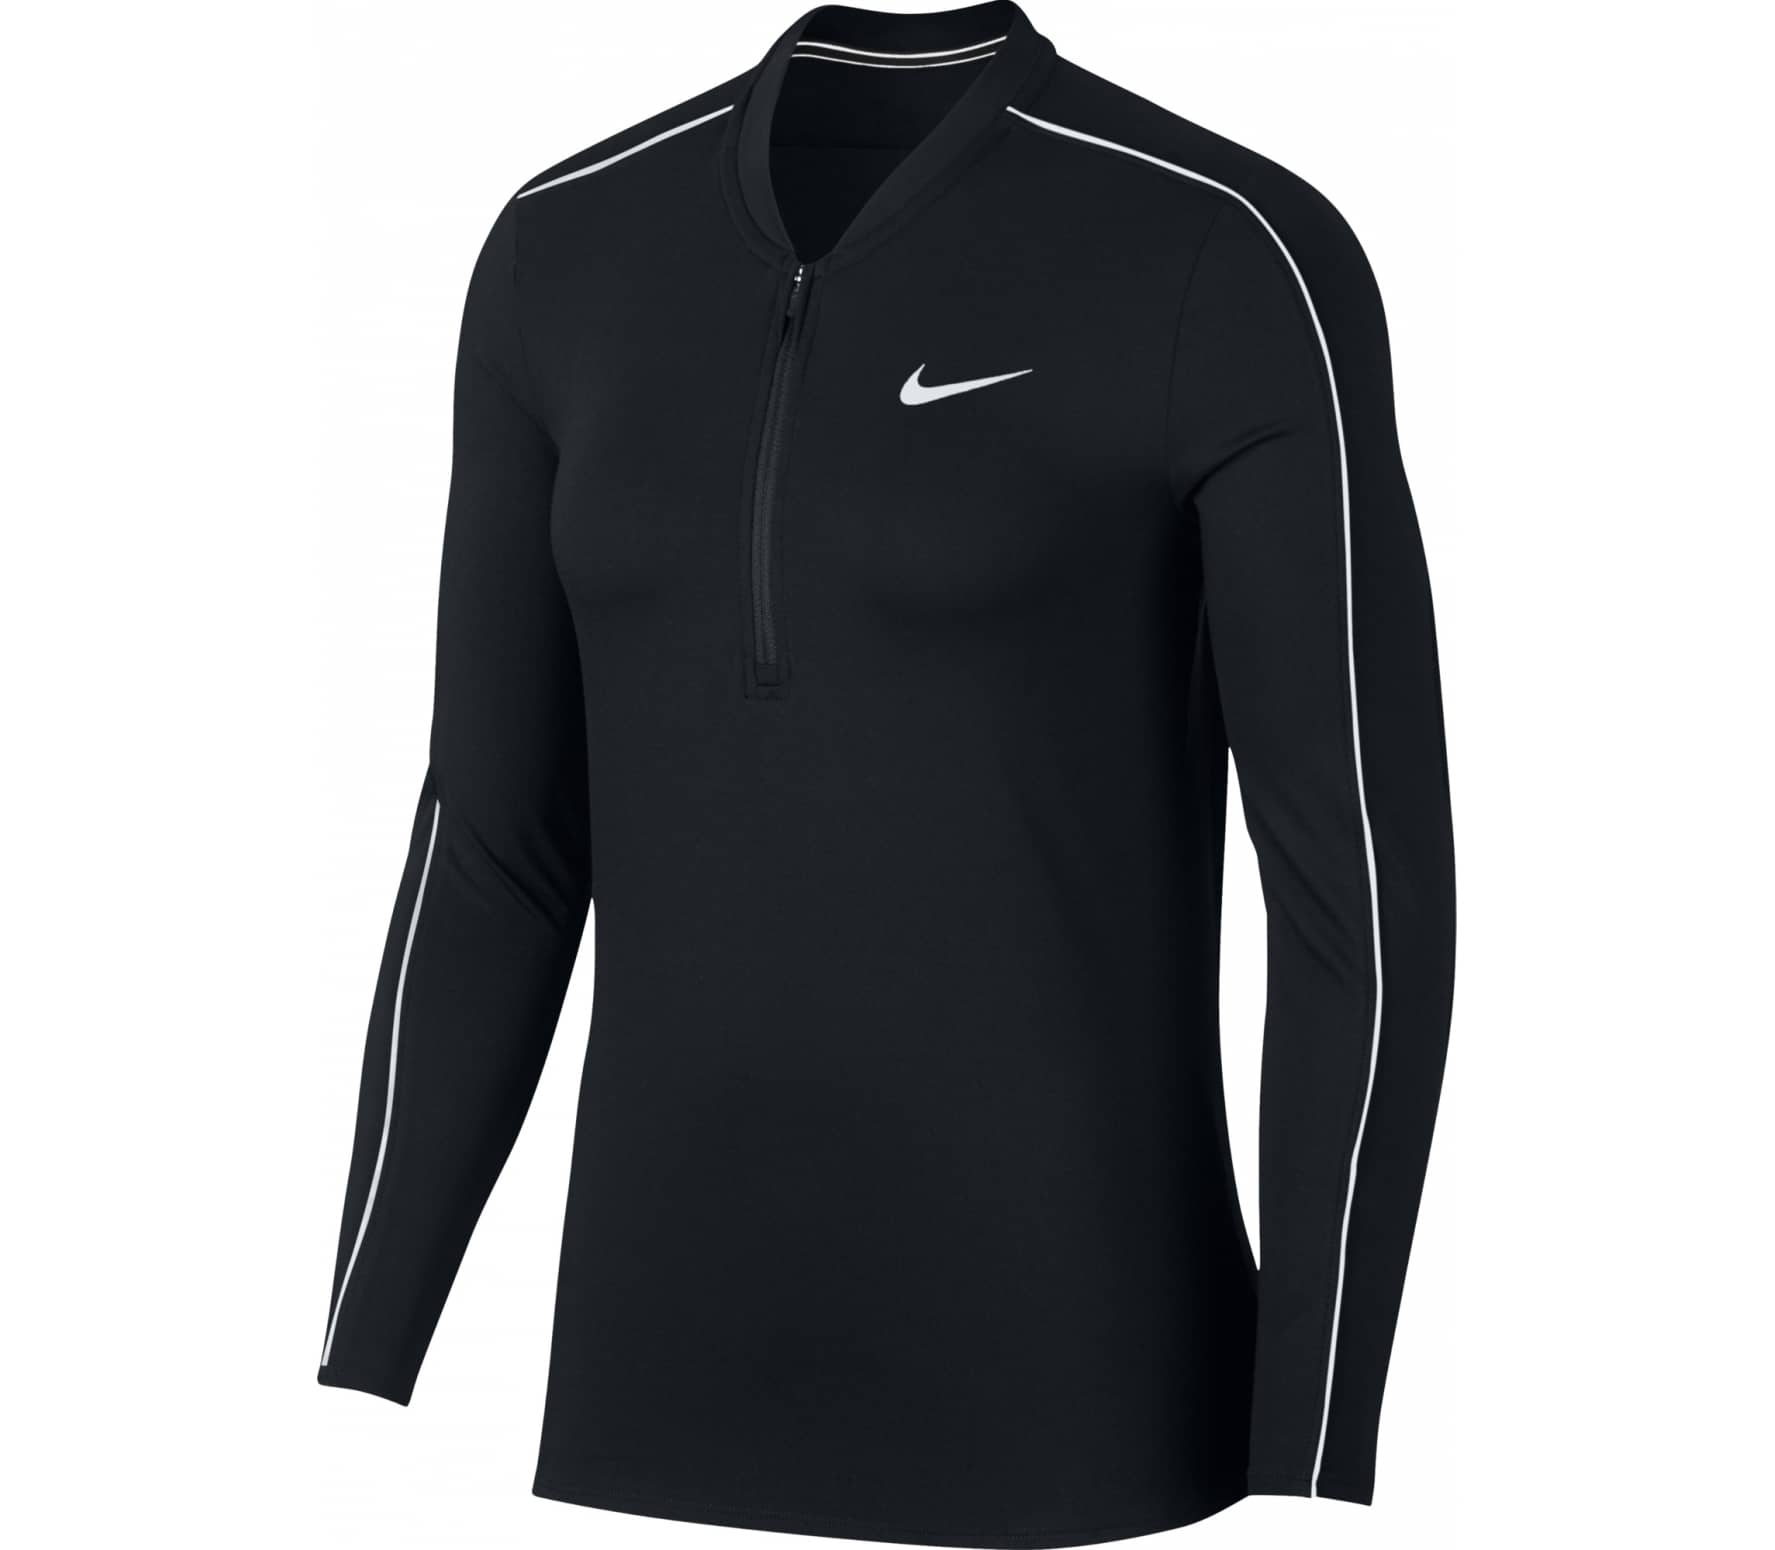 b0410121 Nike - Court Dry women's tennis long-sleeved top (black) - buy it at ...